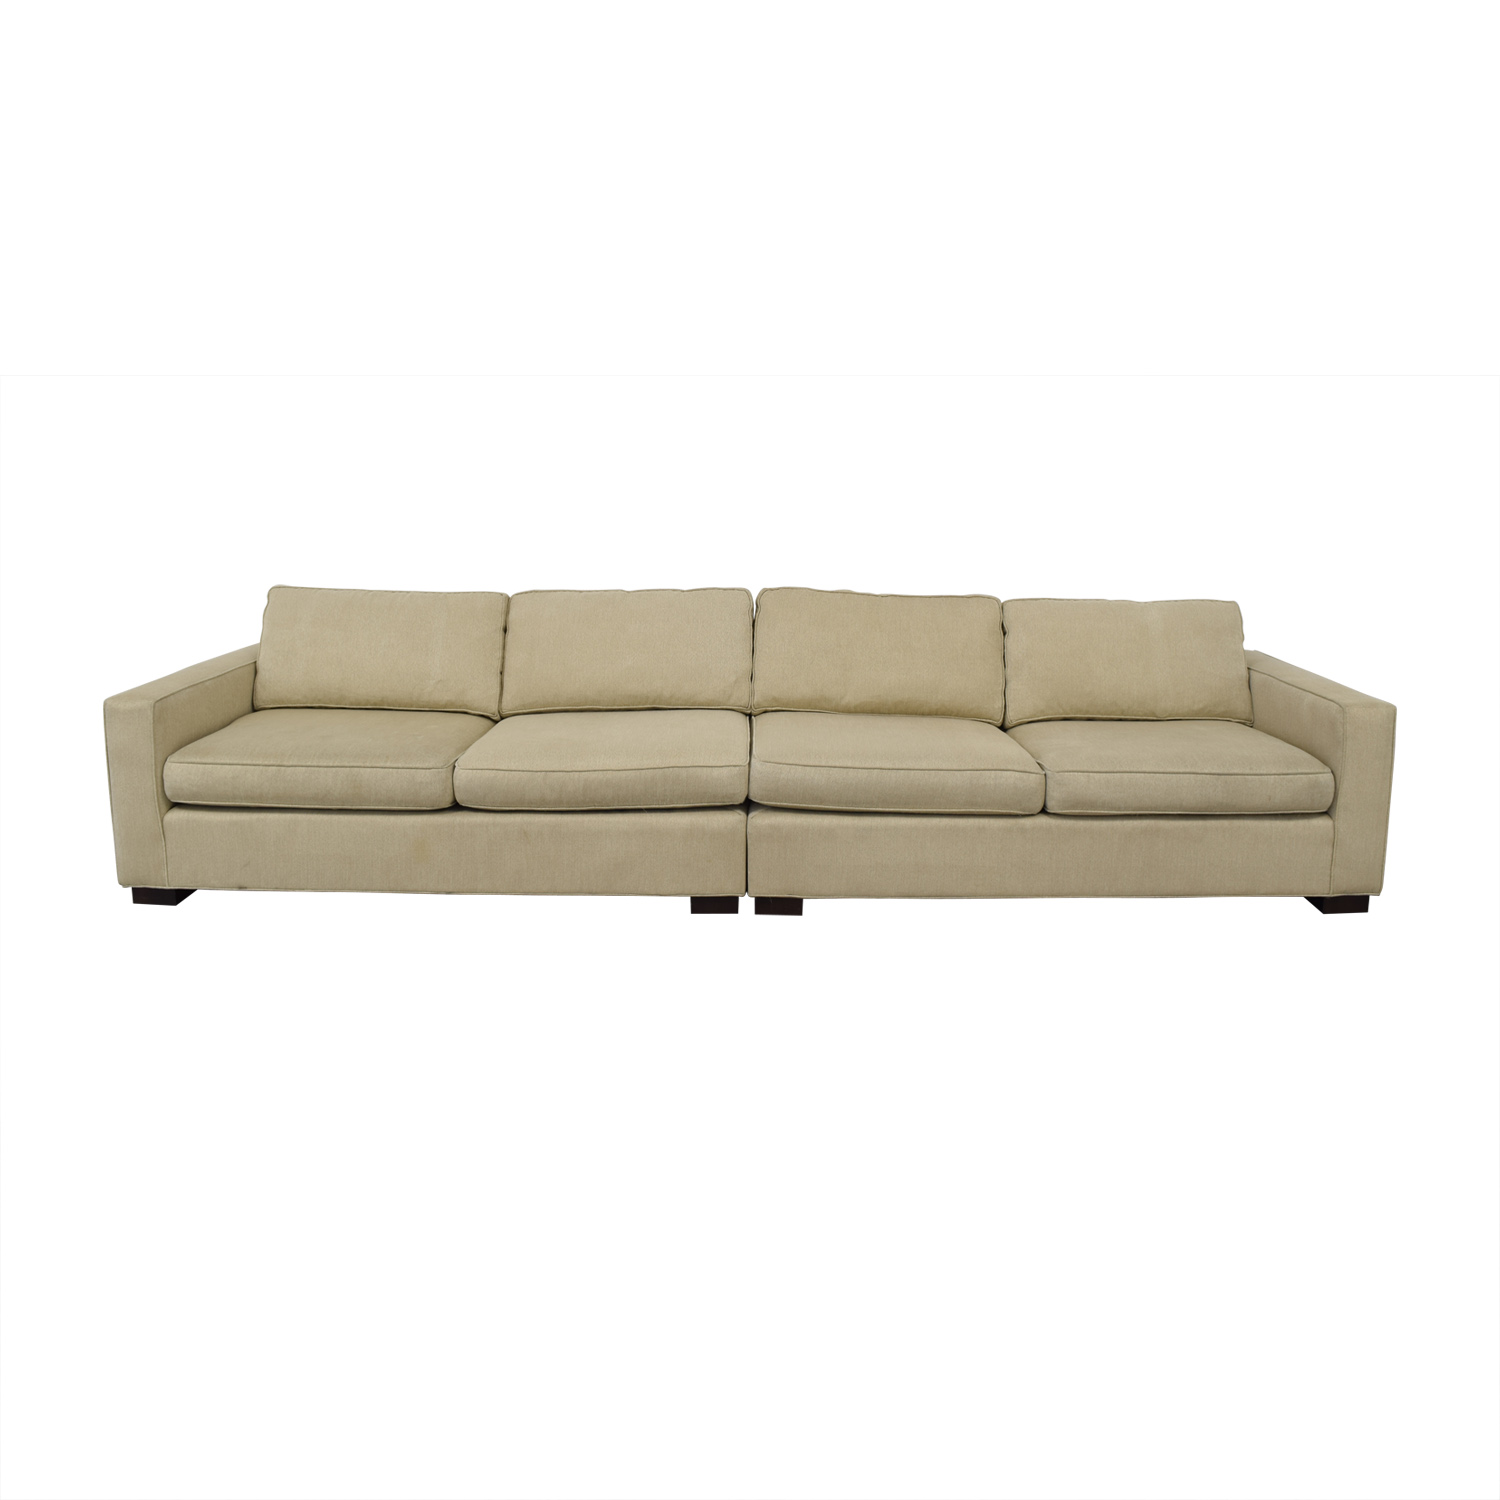 Mitchell Gold + Bob Williams Mitchell Gold + Bob Williams Carson Beige Four-Cushion Sofa nj